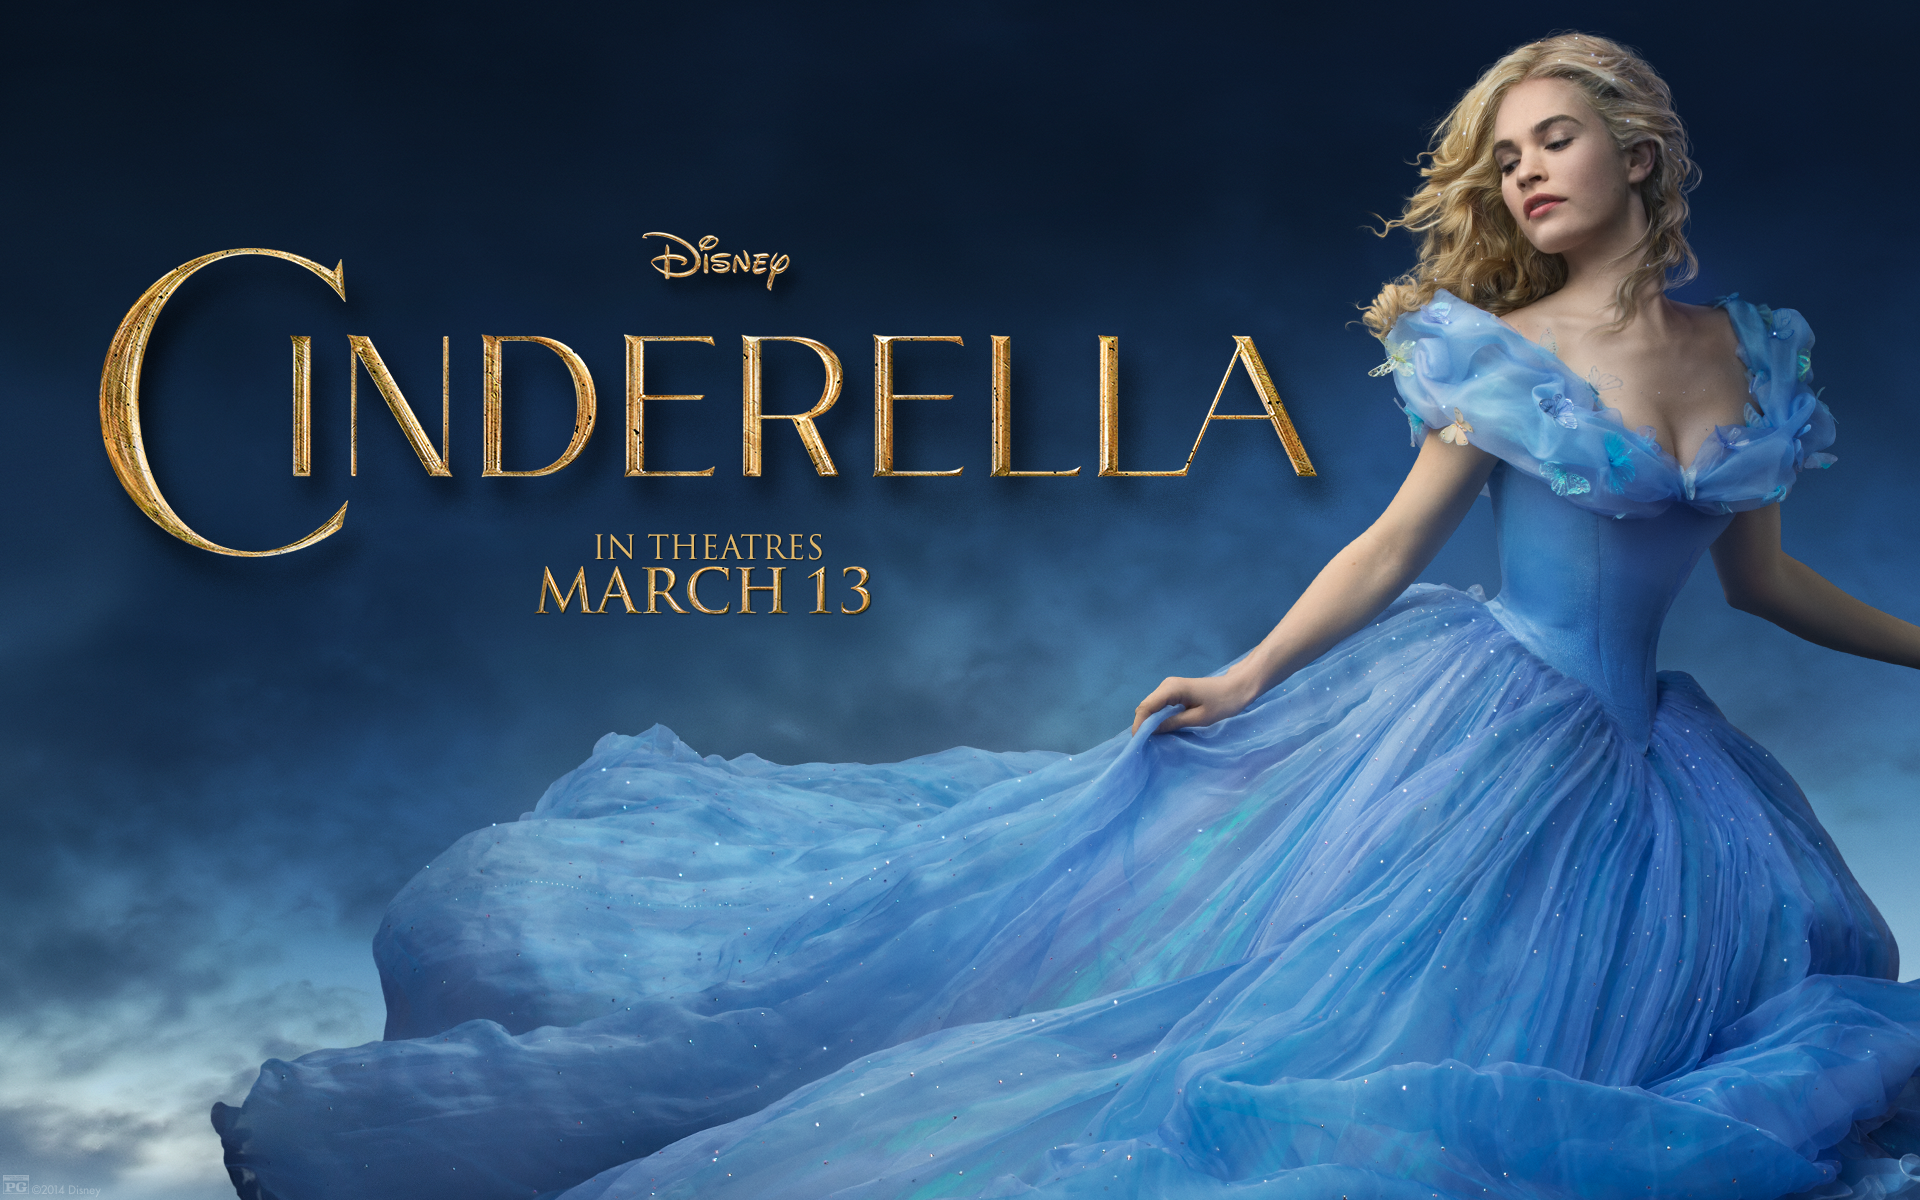 https://blogs.ancientfaith.com/roadsfromemmaus/wp-content/uploads/sites/8/2015/03/Cinderella-2015.png